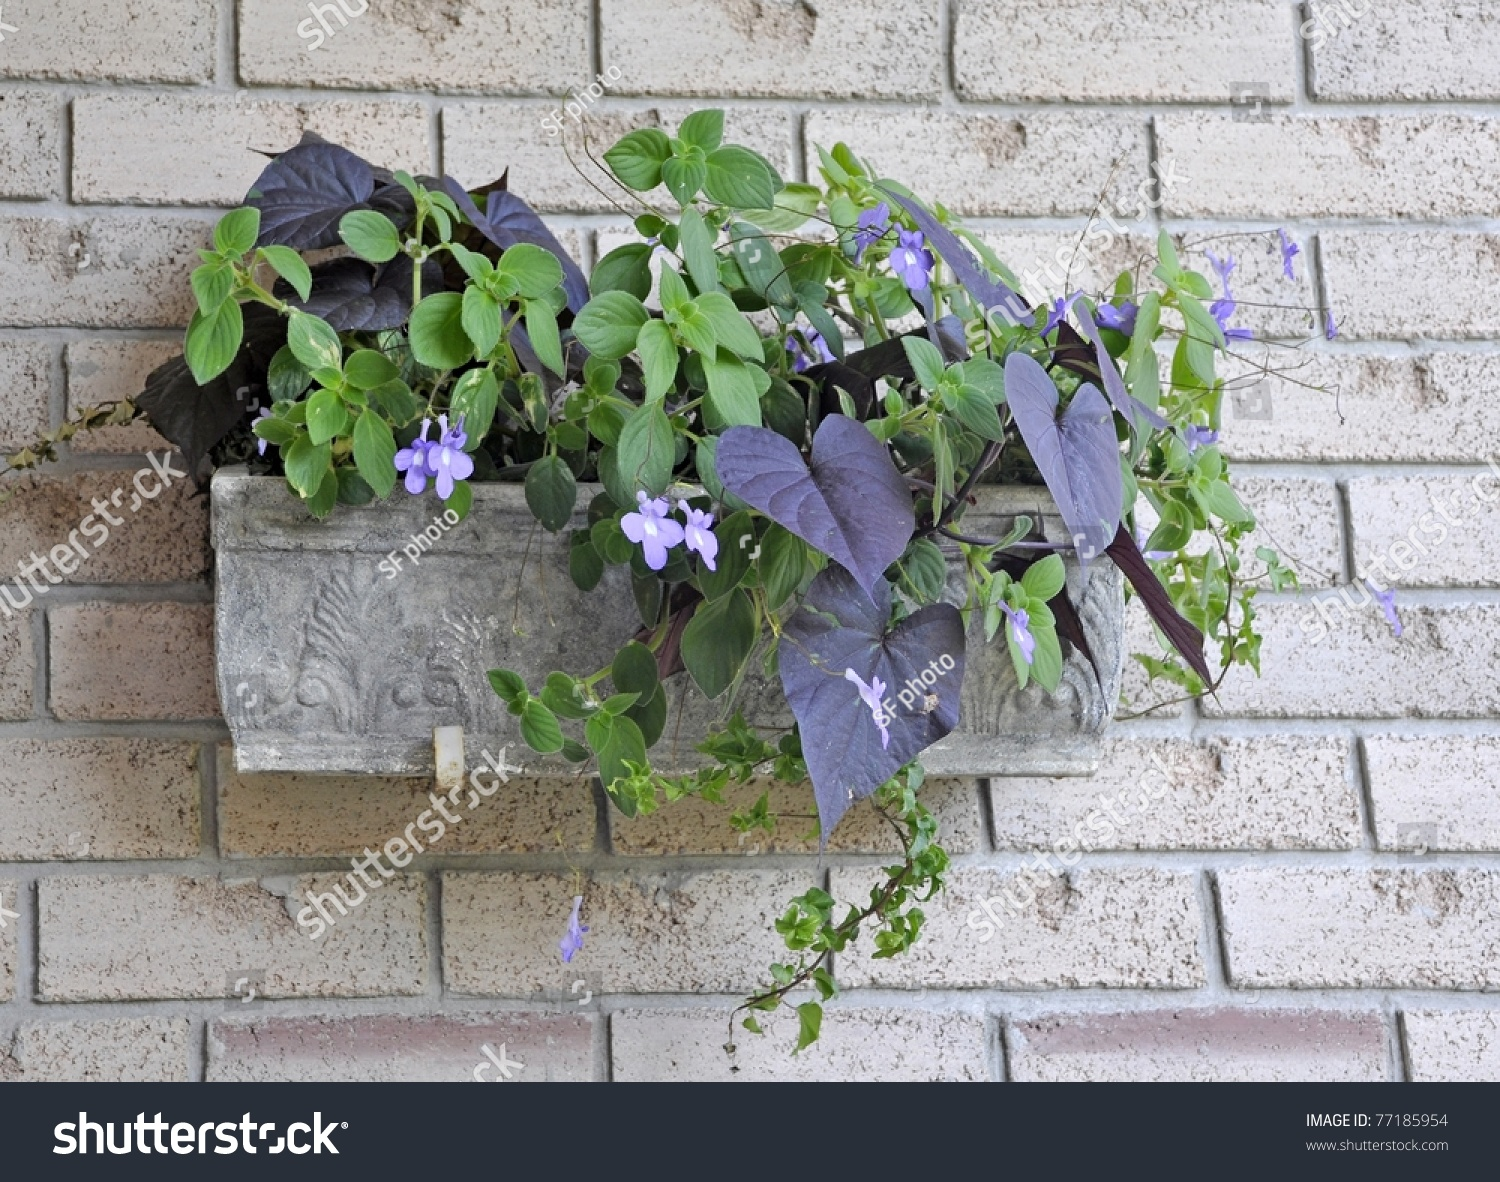 Hanging outdoor planter arrangement annual flowers stock photo edit hanging outdoor planter with an arrangement of annual flowers for the shade izmirmasajfo